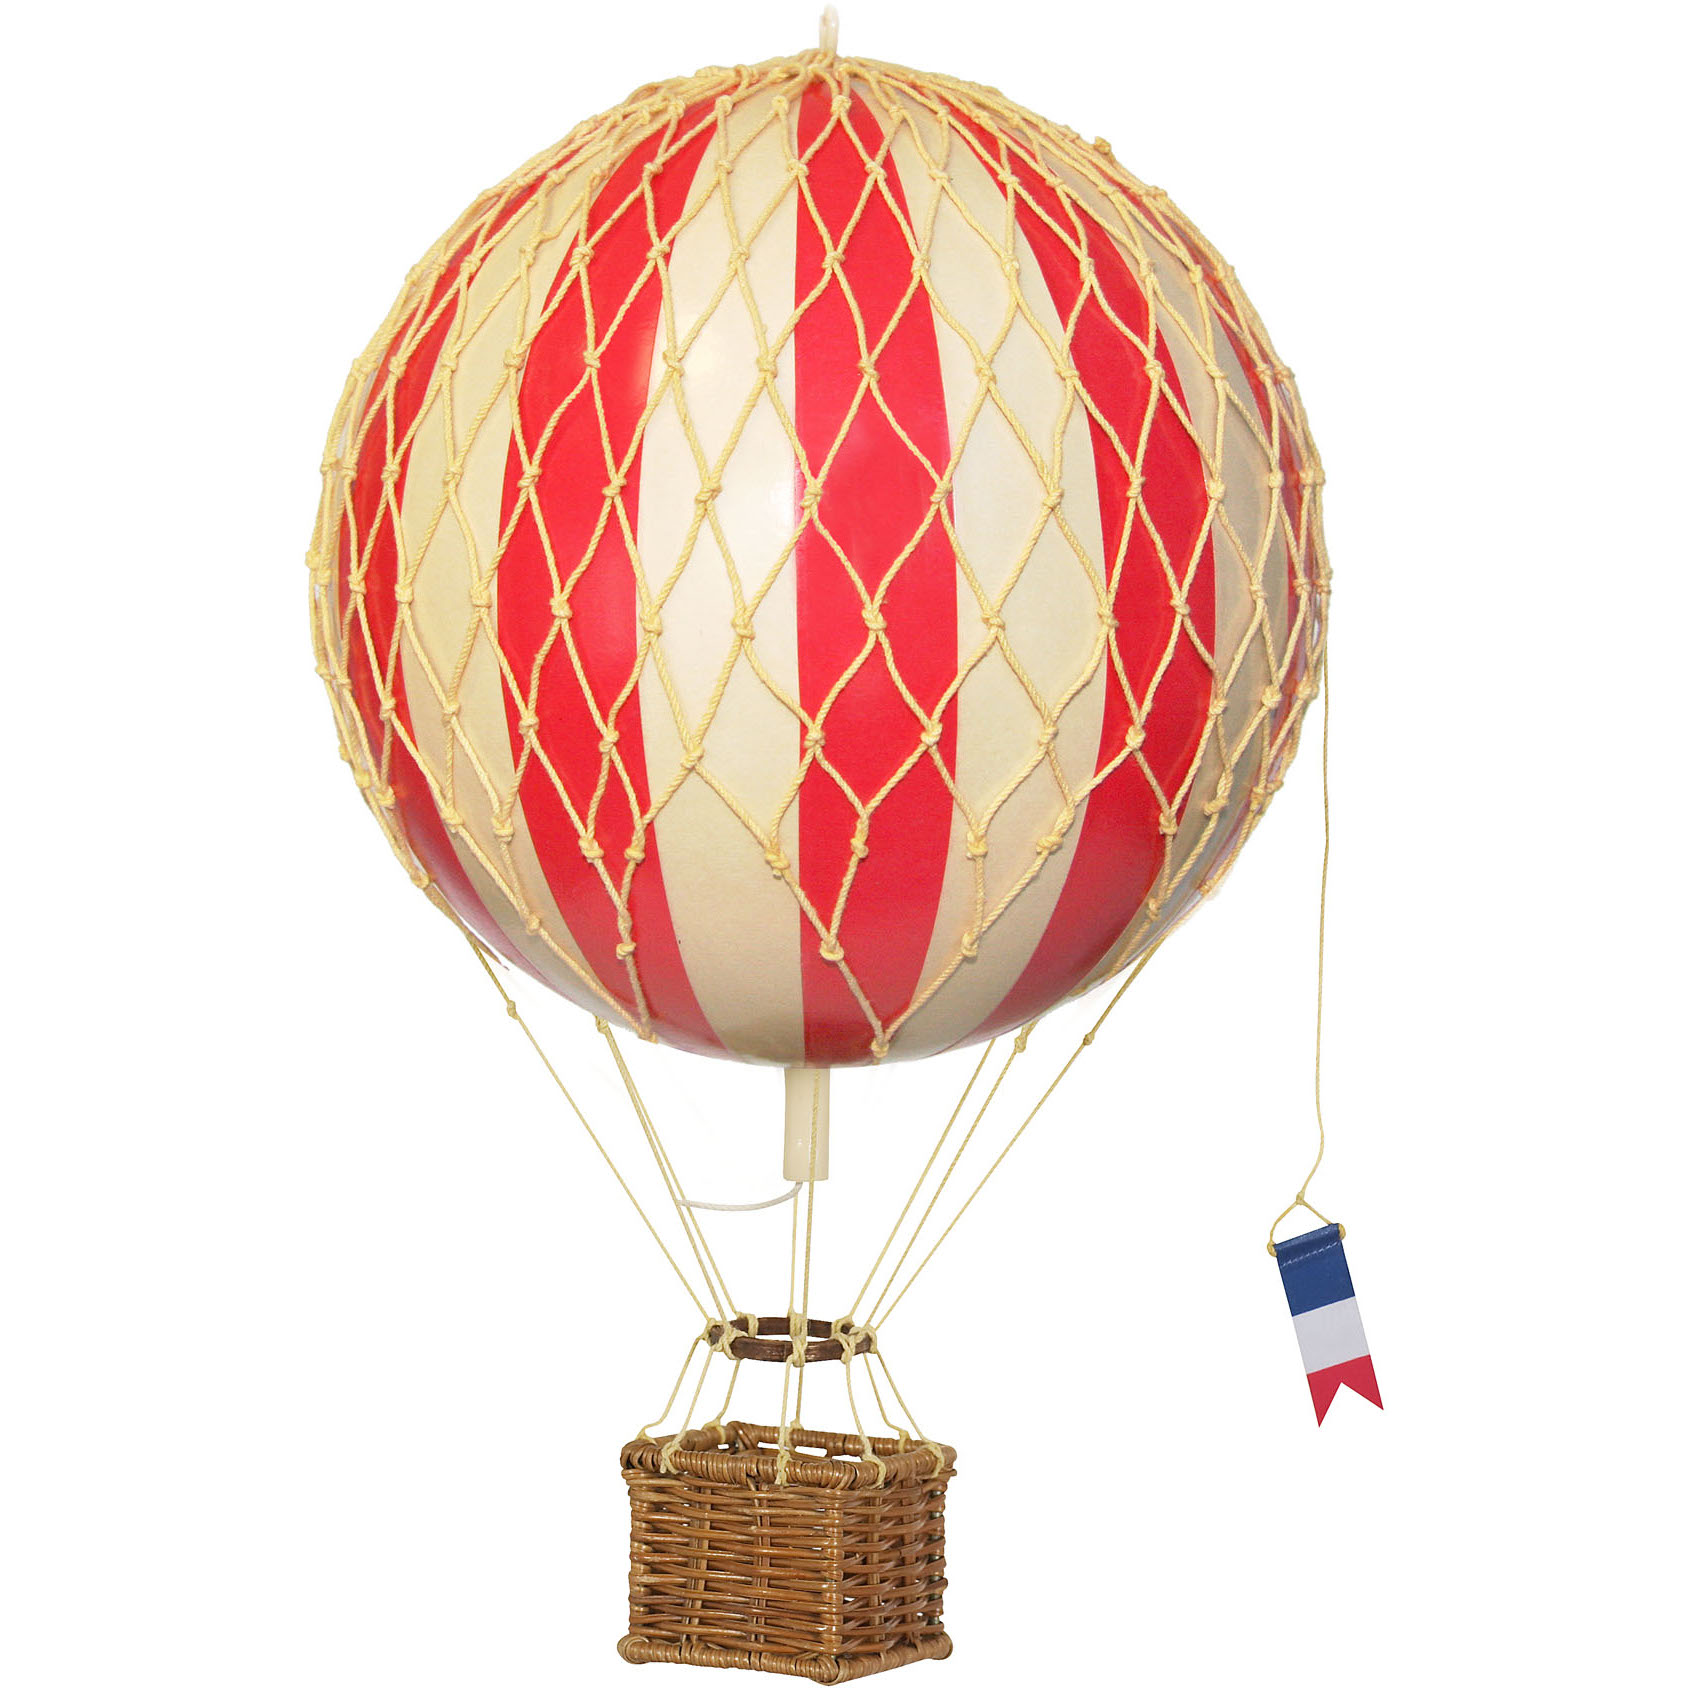 Authentic Models Jules Verne Red Striped Balloon